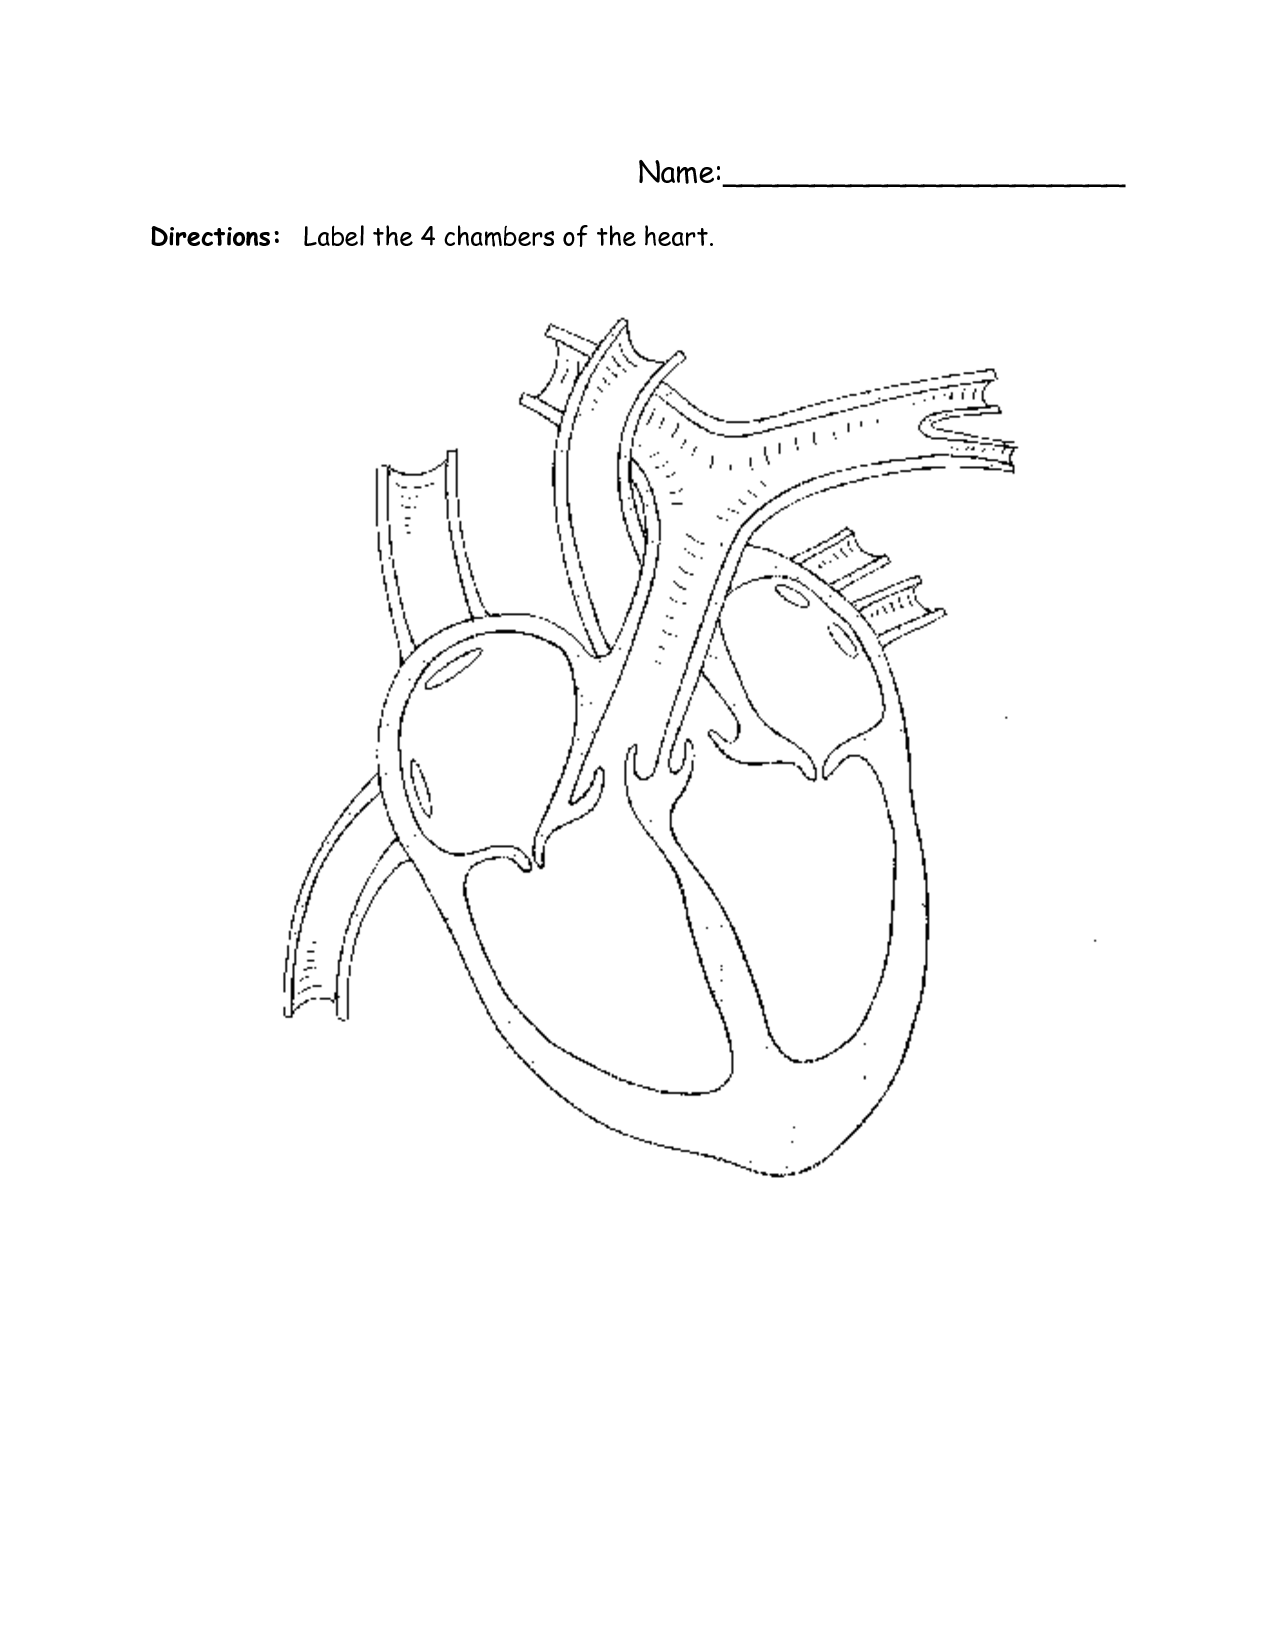 Blank Heart Diagram Worksheet Blank Human Heart Diagram